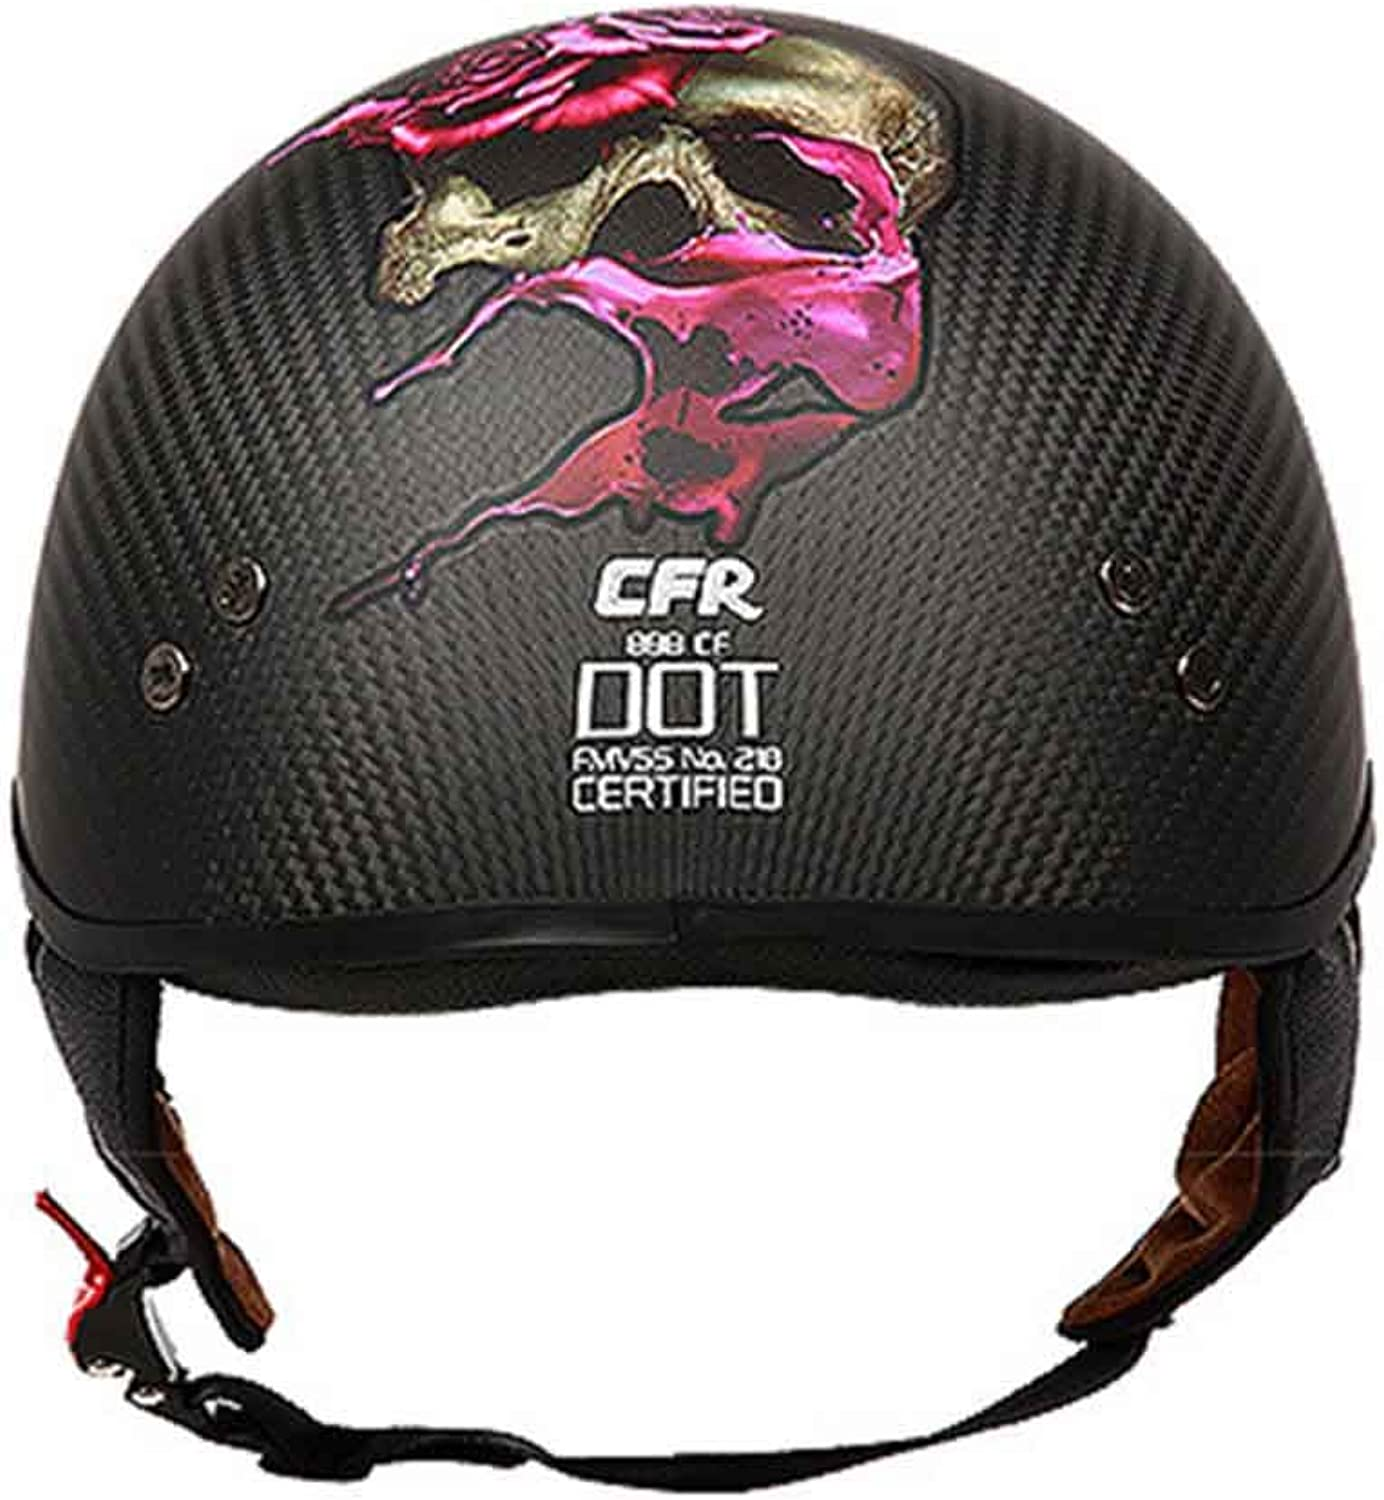 Retro Cycling Helmet Motorcycle HalfCovered Carbon Fiber Half Helmet Four Seasons Universal Riding Helmet Unisex